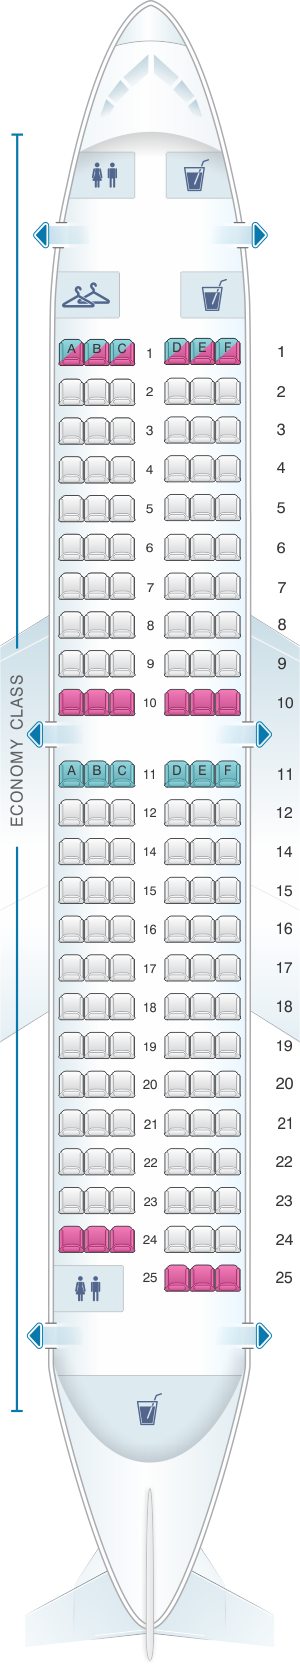 Seat map for Scandinavian Airlines (SAS) Boeing B737 700